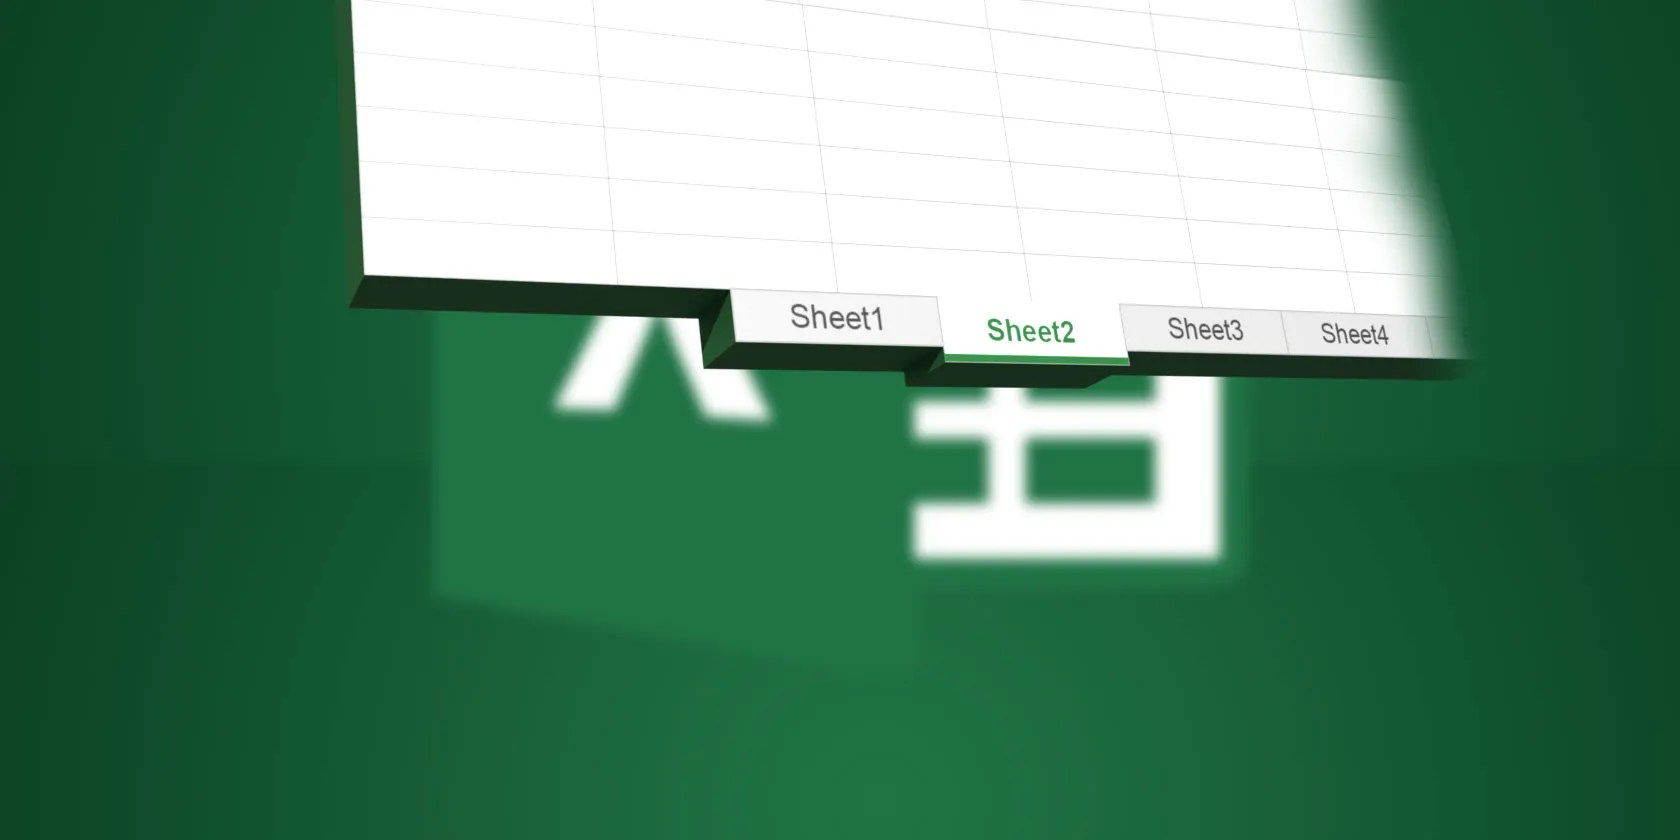 How To Work With Worksheet Tabs In Microsoft Excel